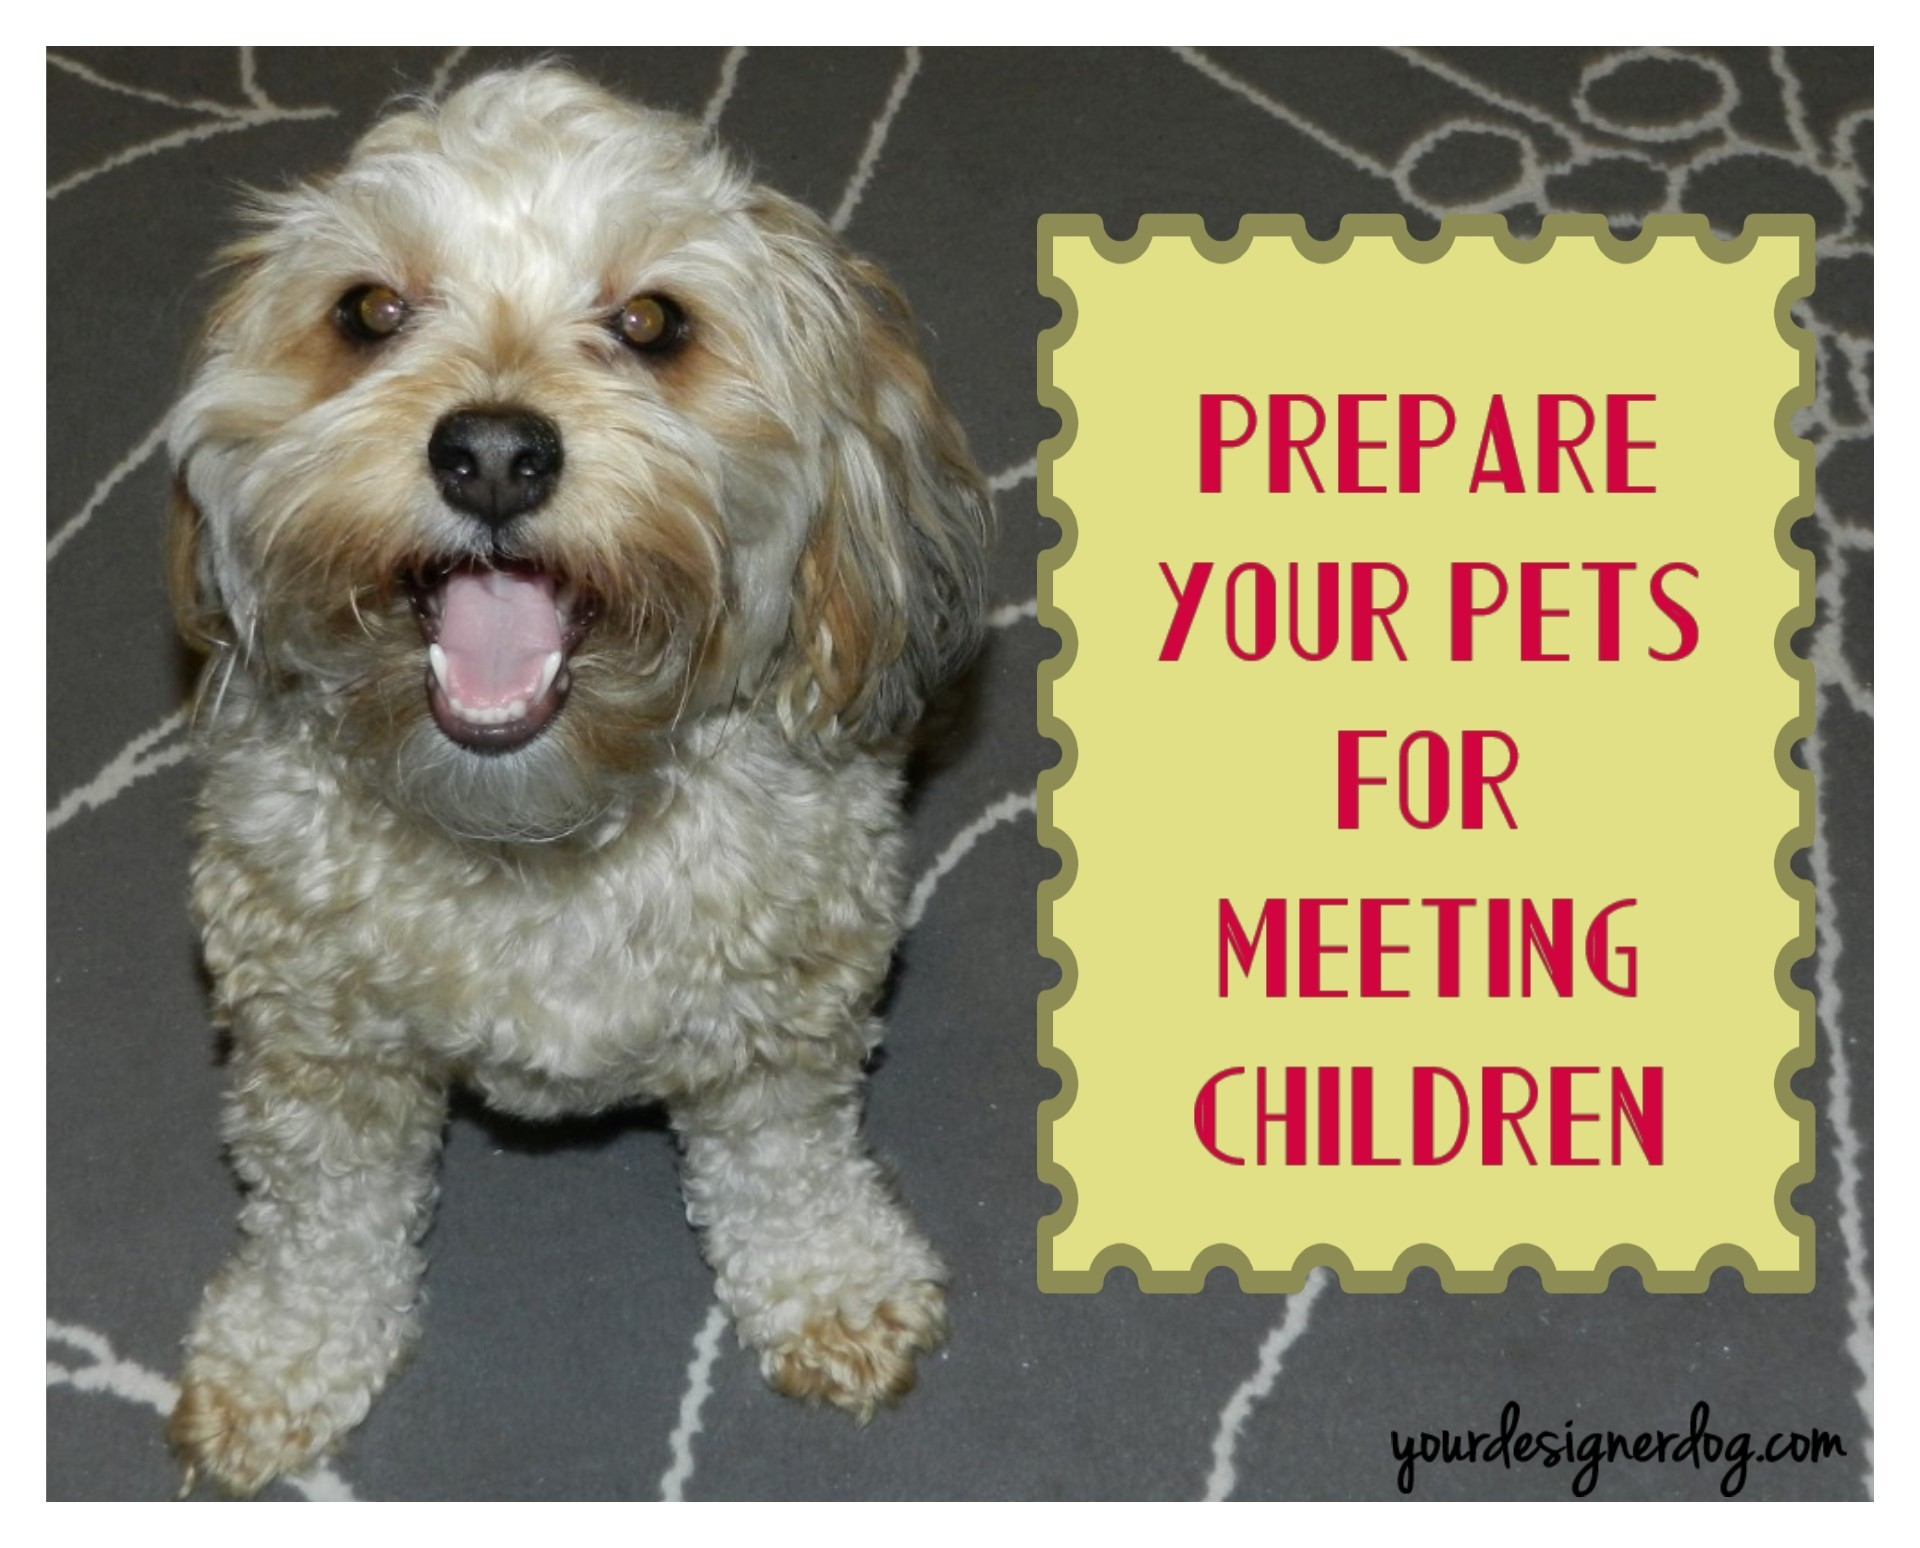 Preparing Your Pets For Meeting Children